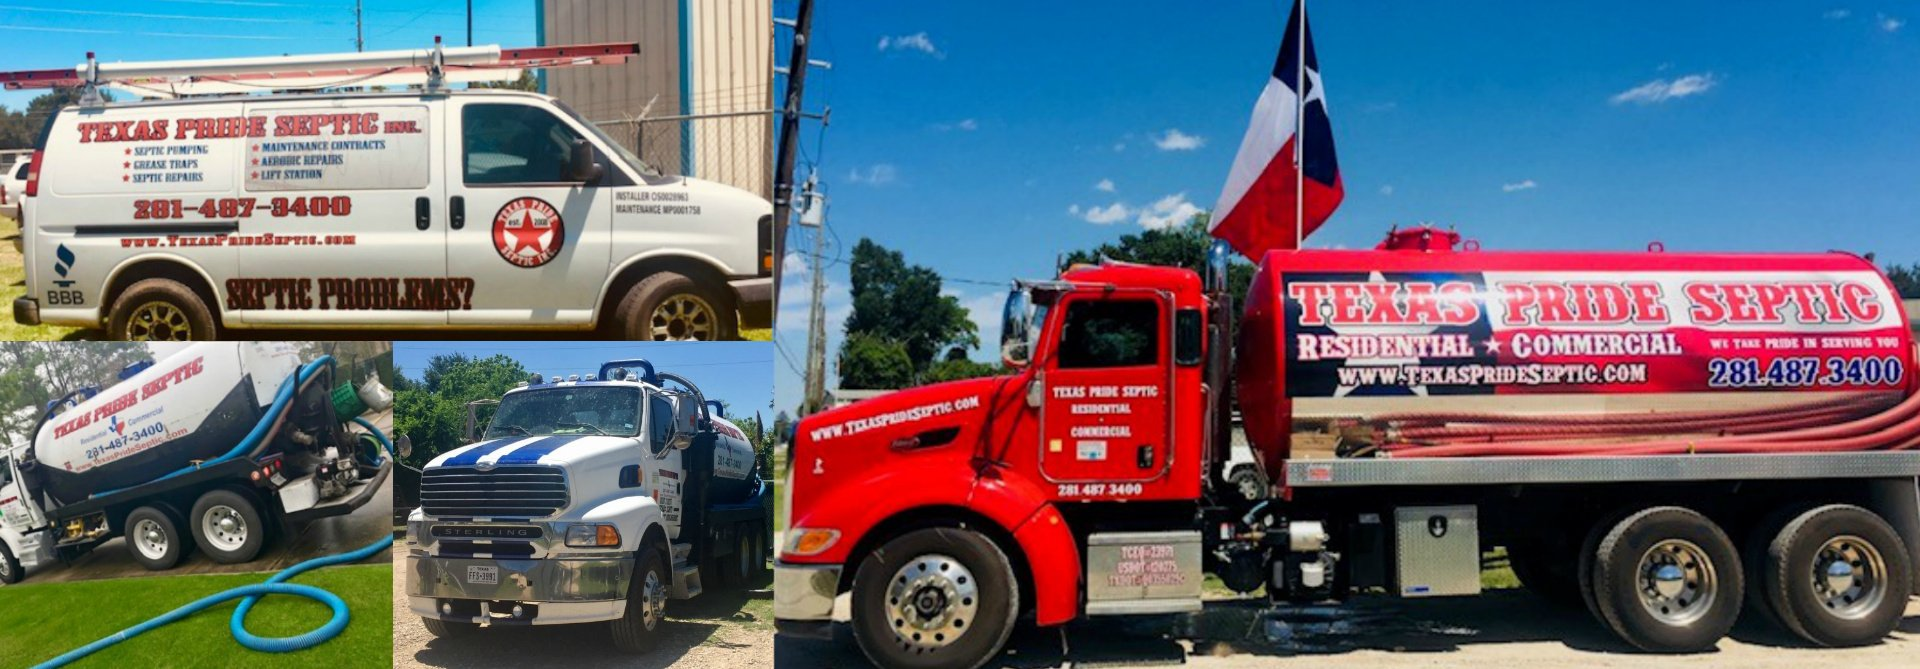 Texas Septic Cleaners 24 7 Emergency Services Texas Pride Septic Inc